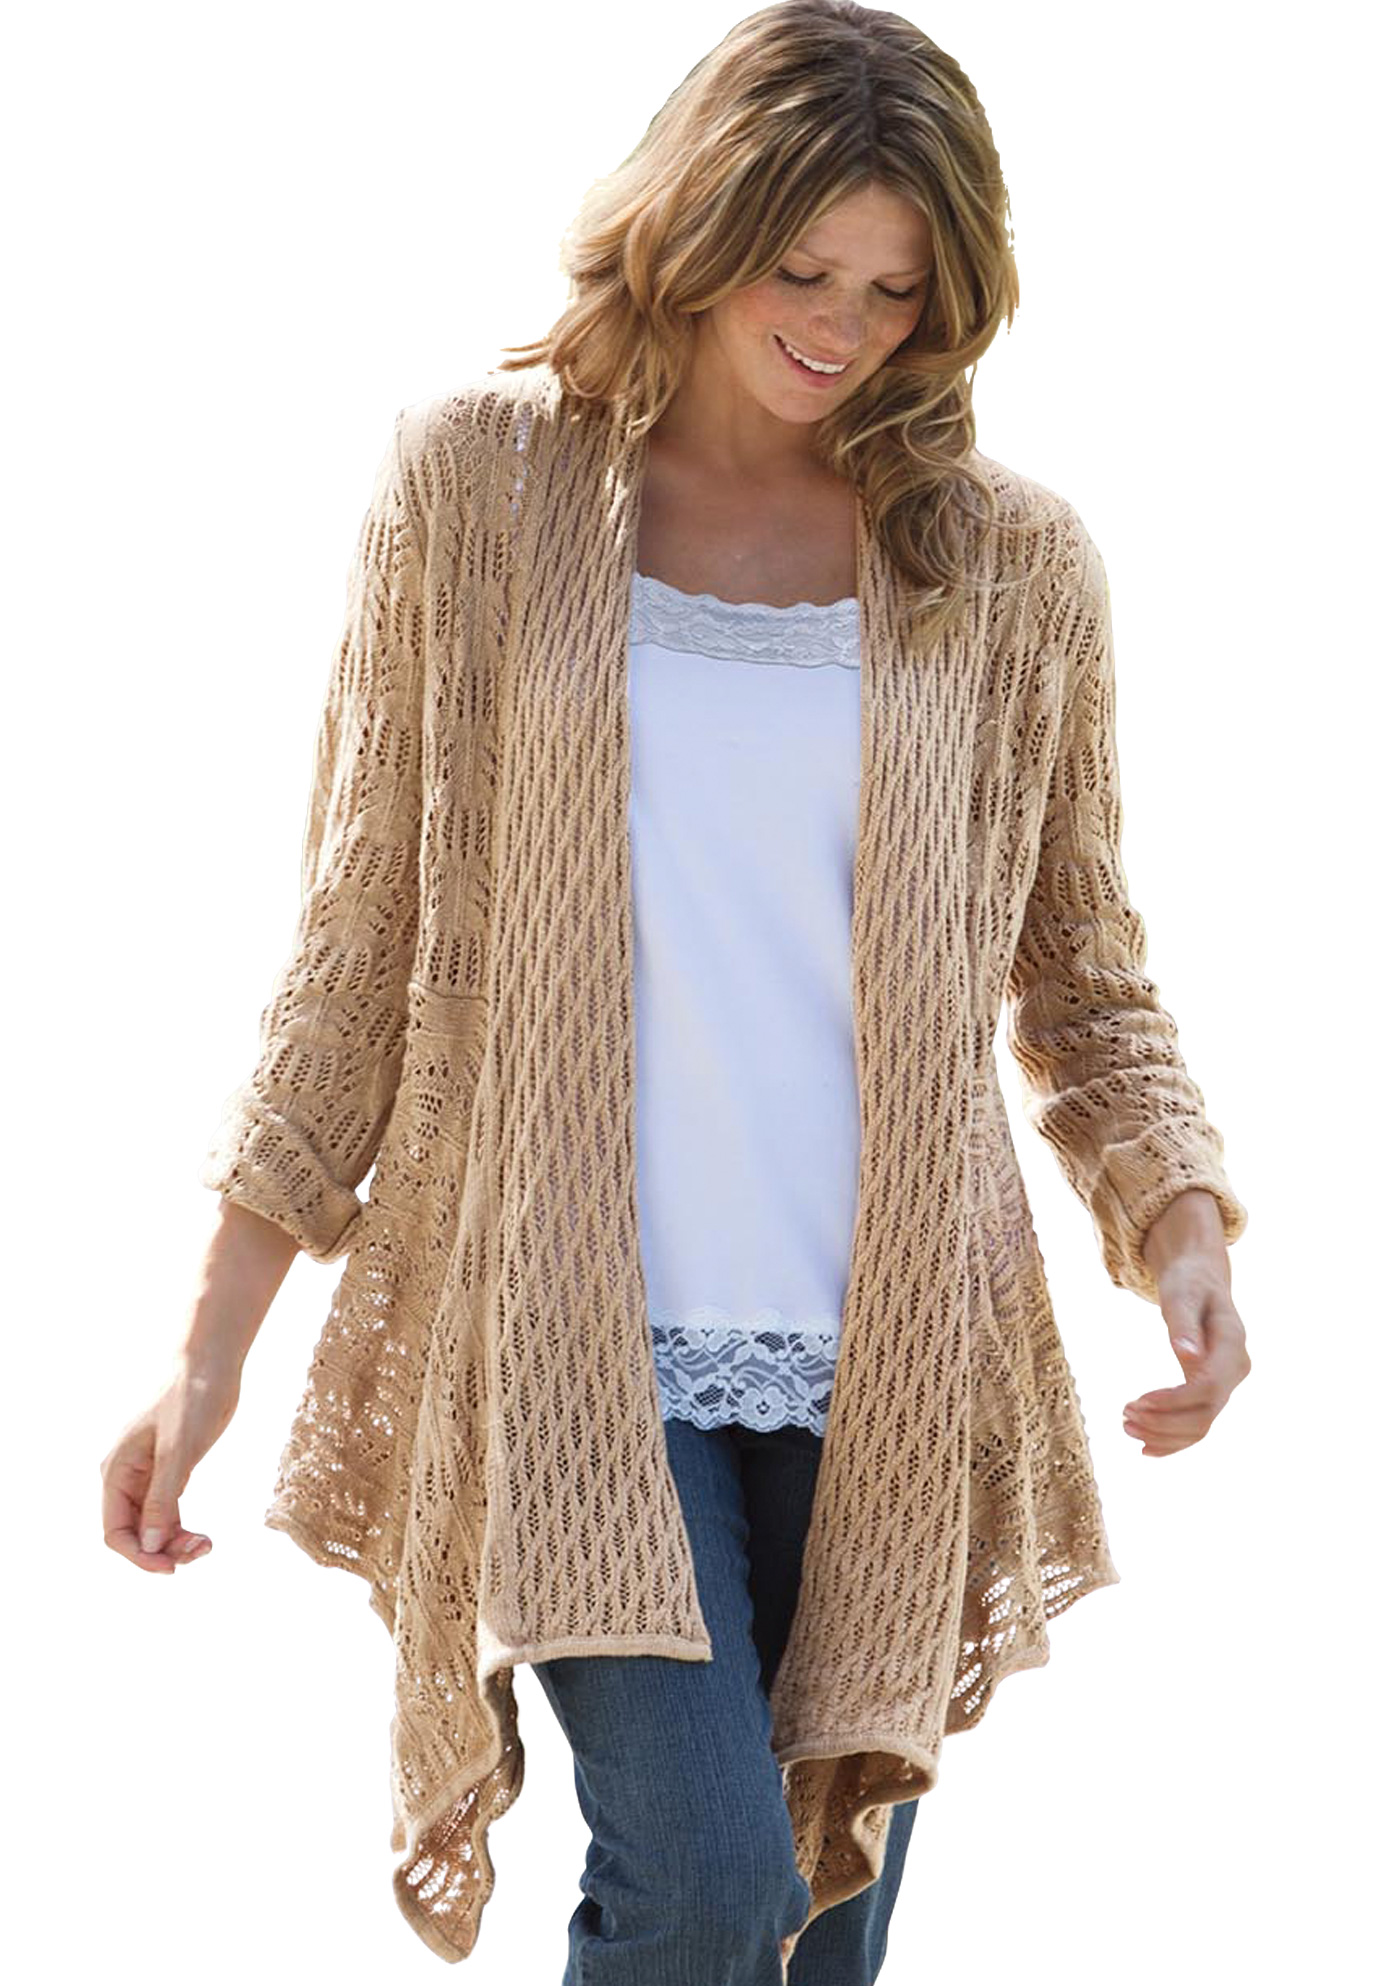 Sweater, open front cardigan